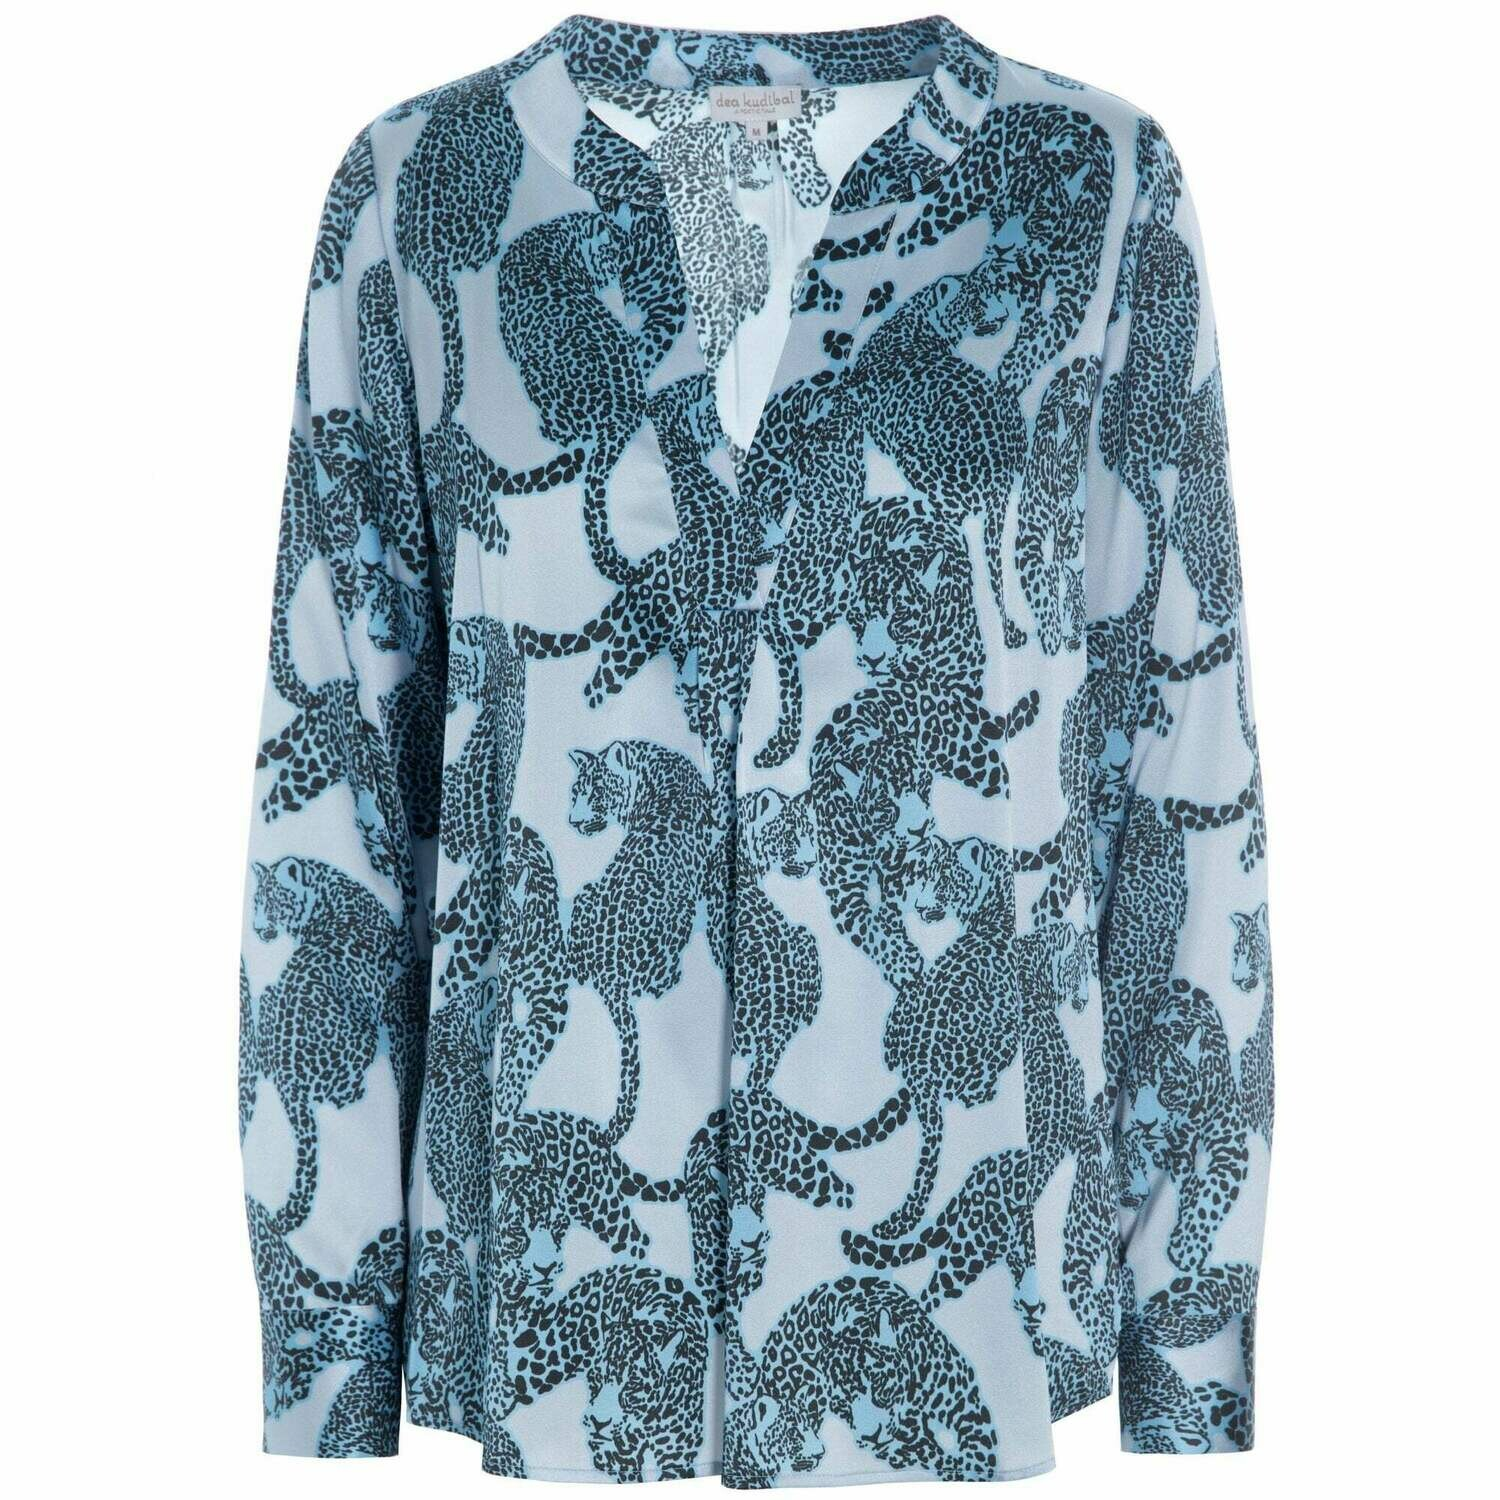 Santena Animal Silk Shirt